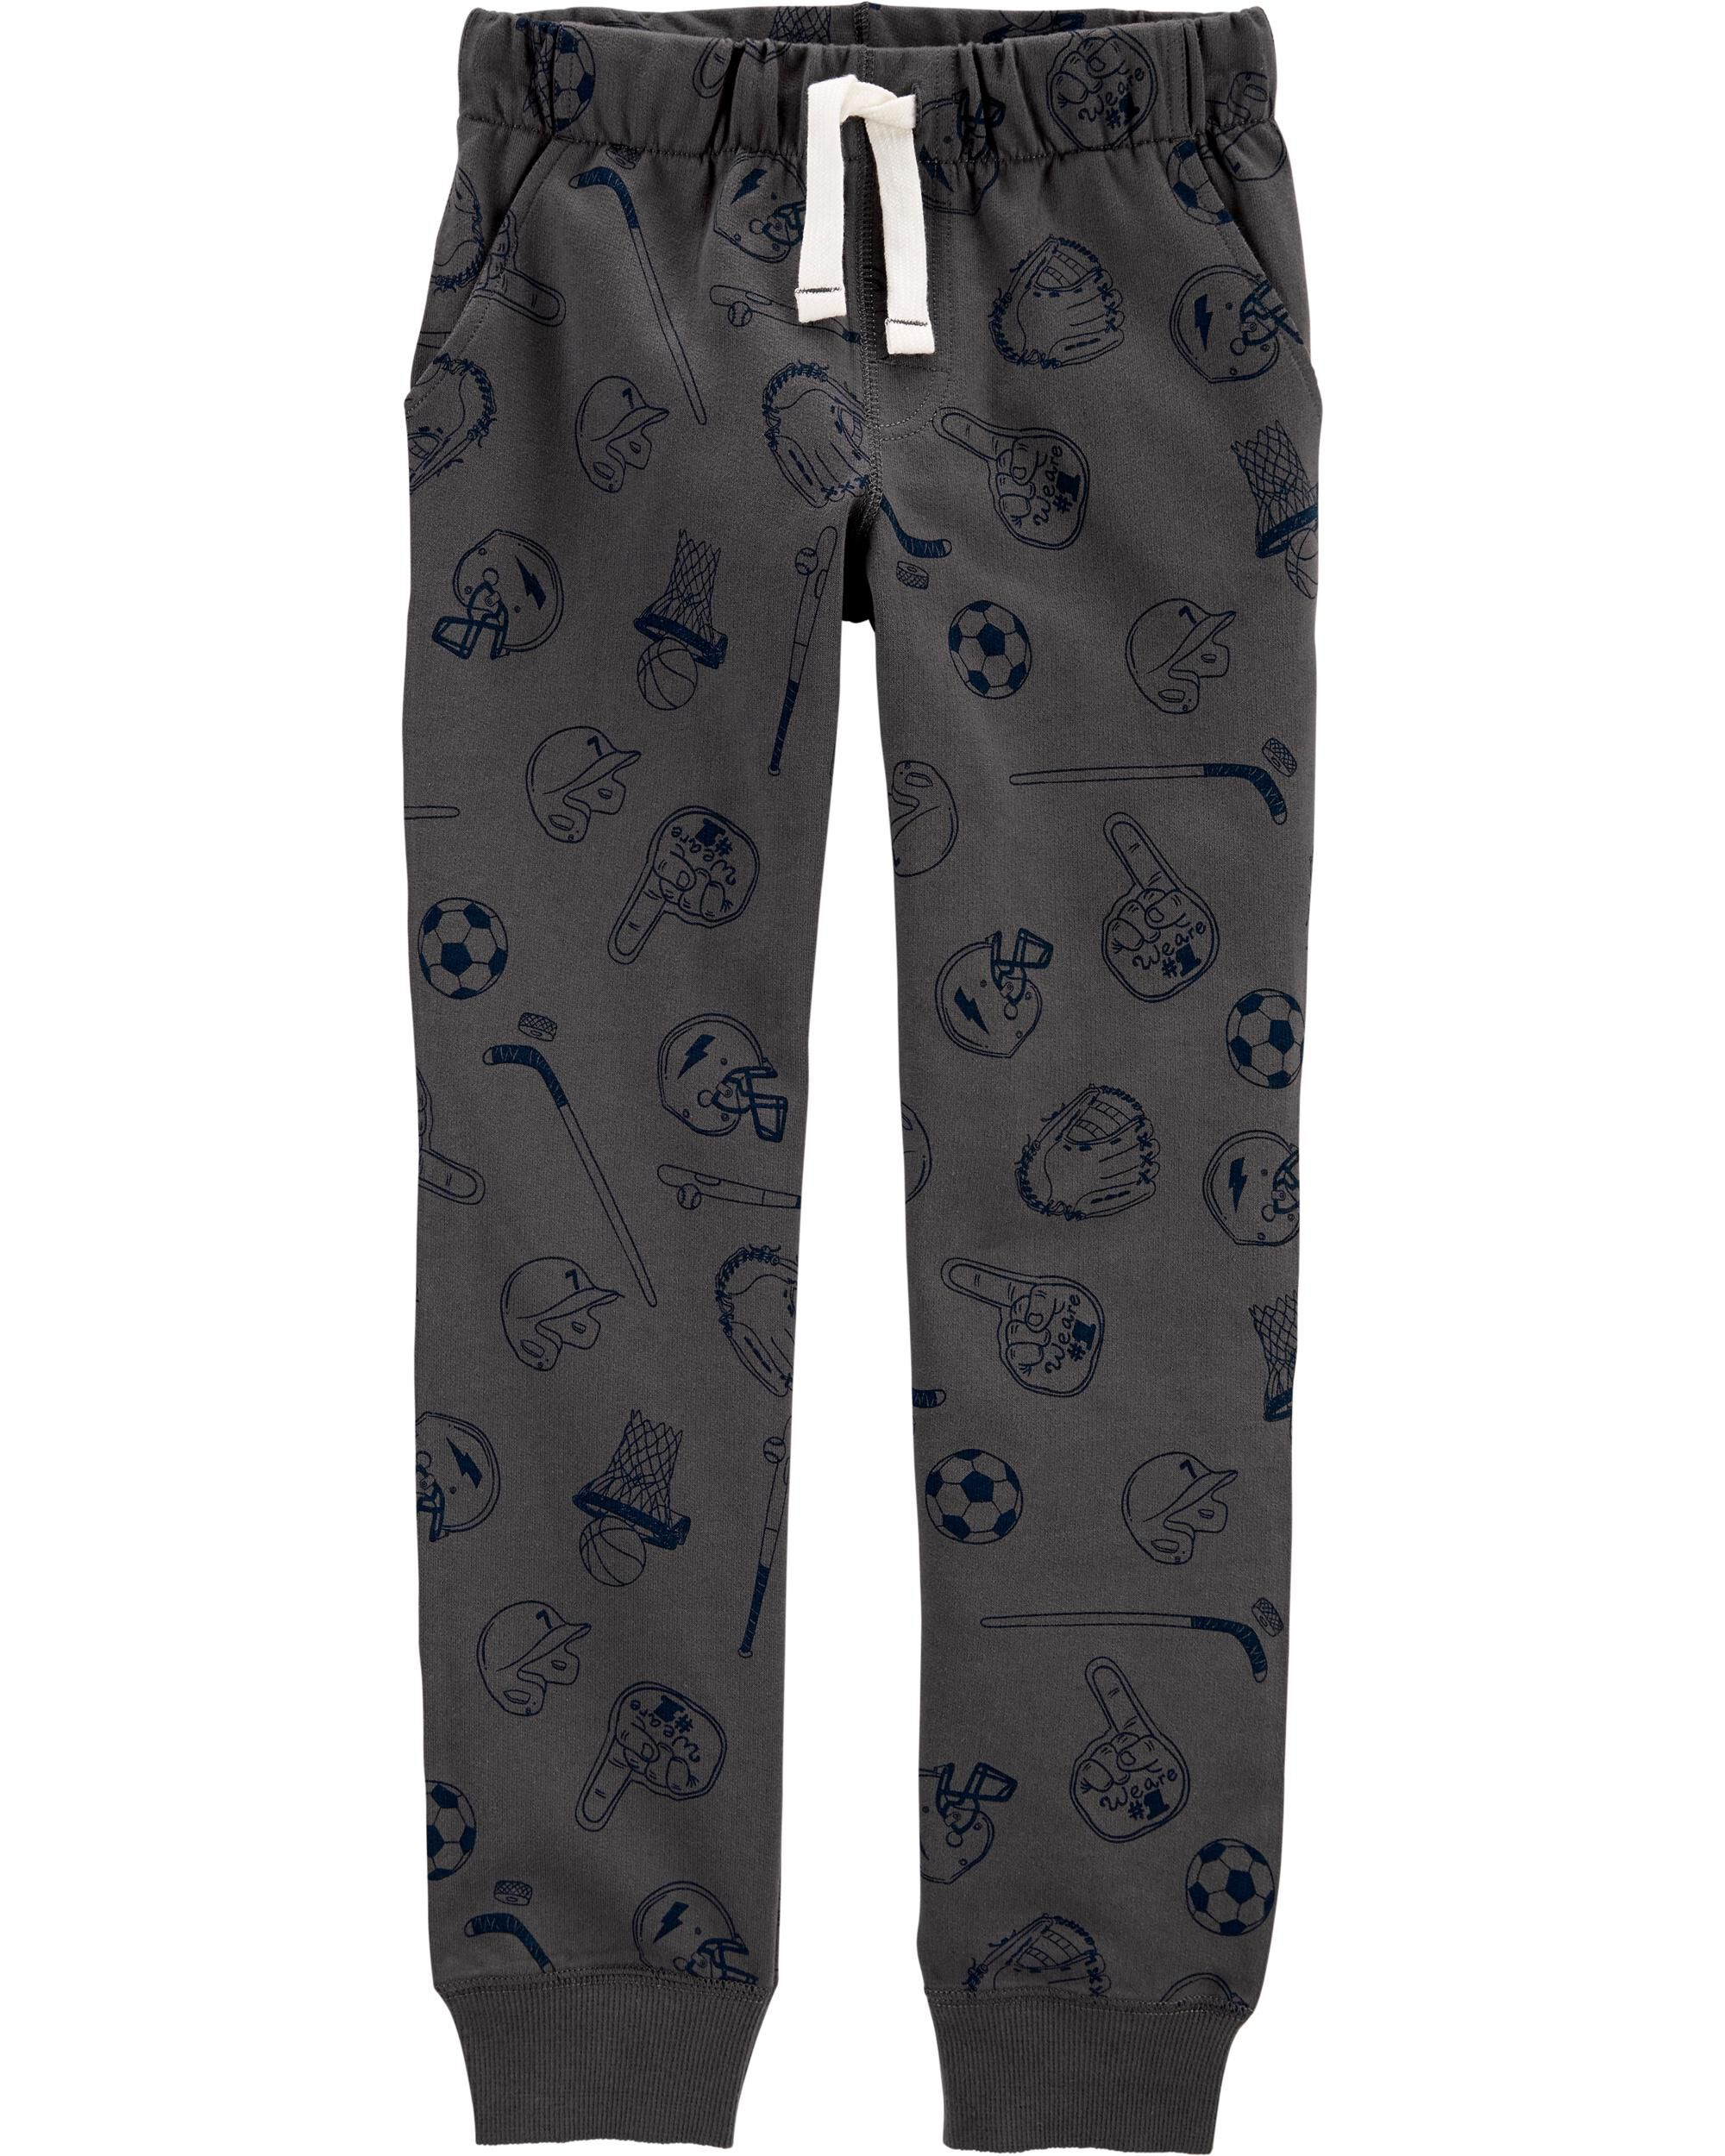 *DOORBUSTER*Sports Pull-On French Terry Joggers